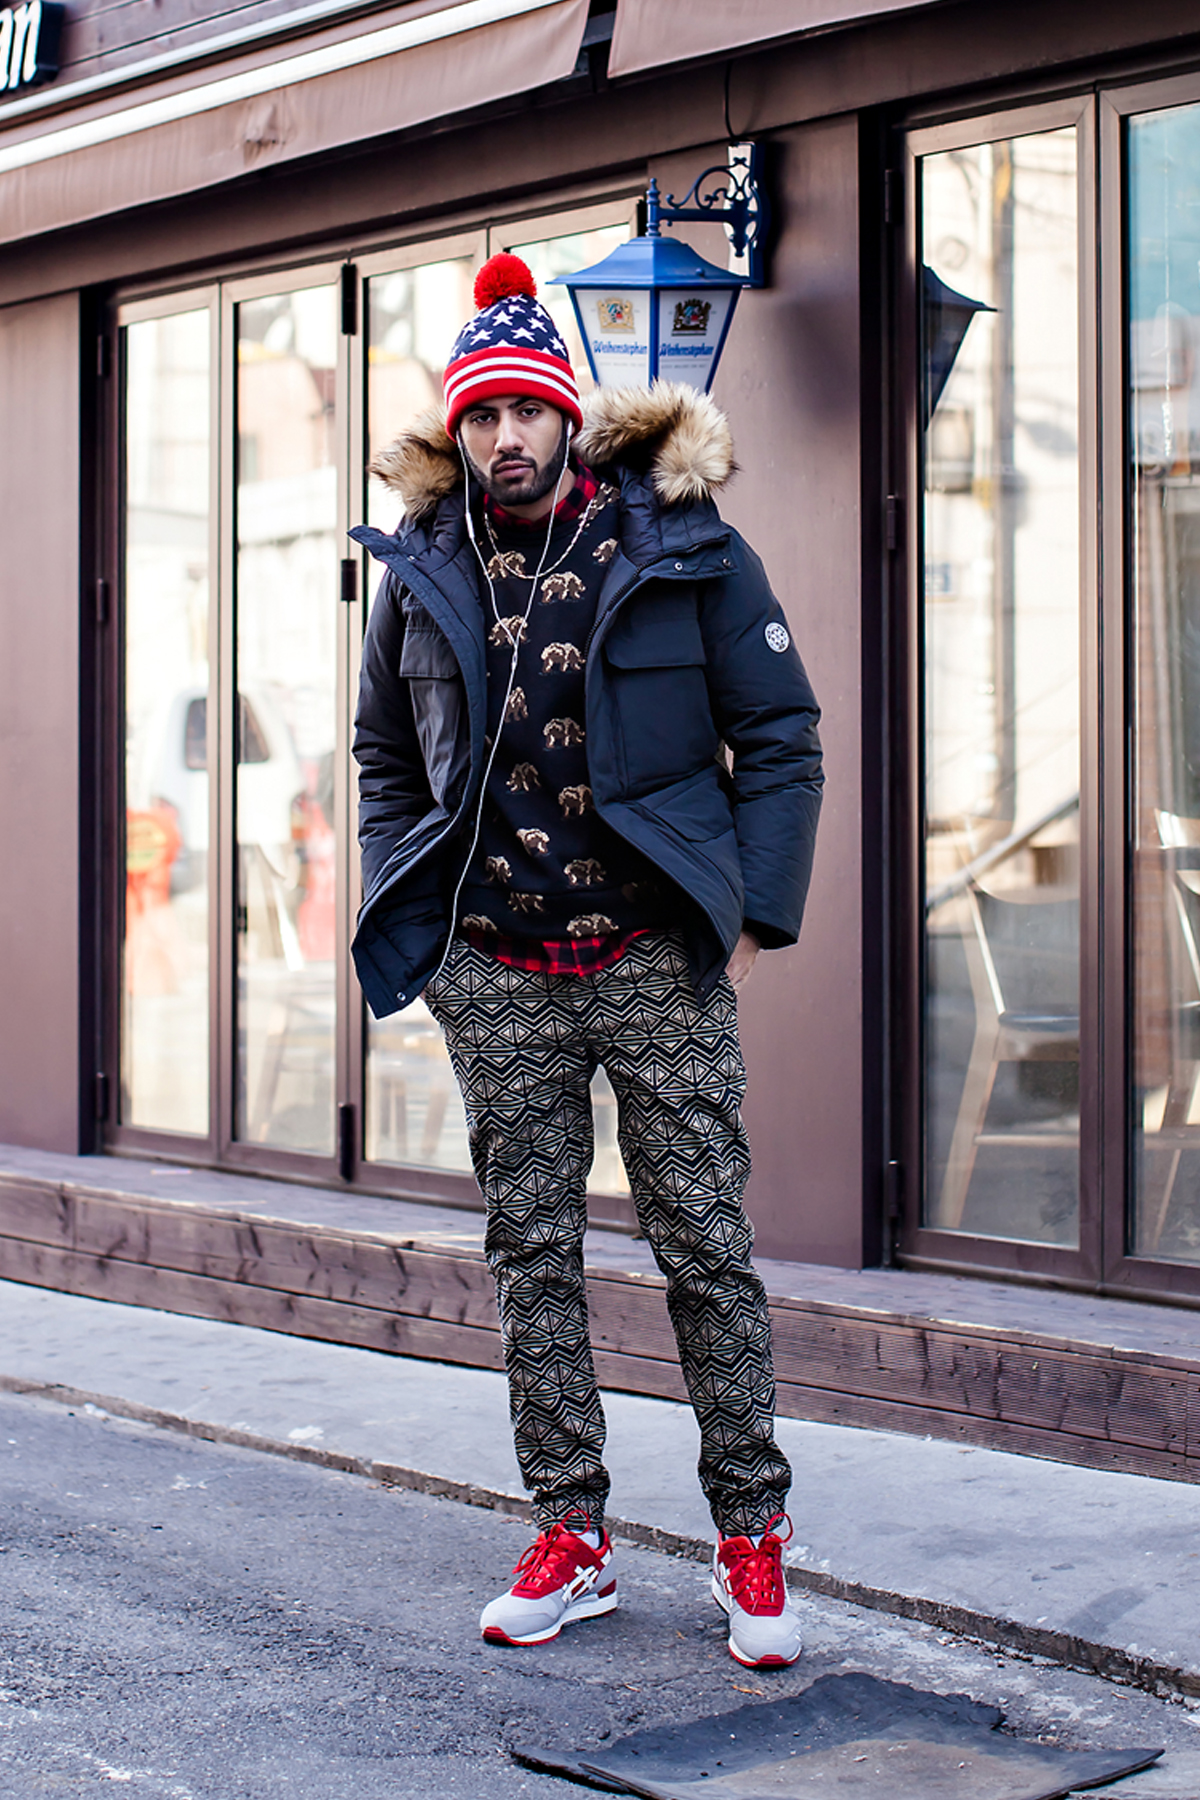 On the street… Jac Seoul